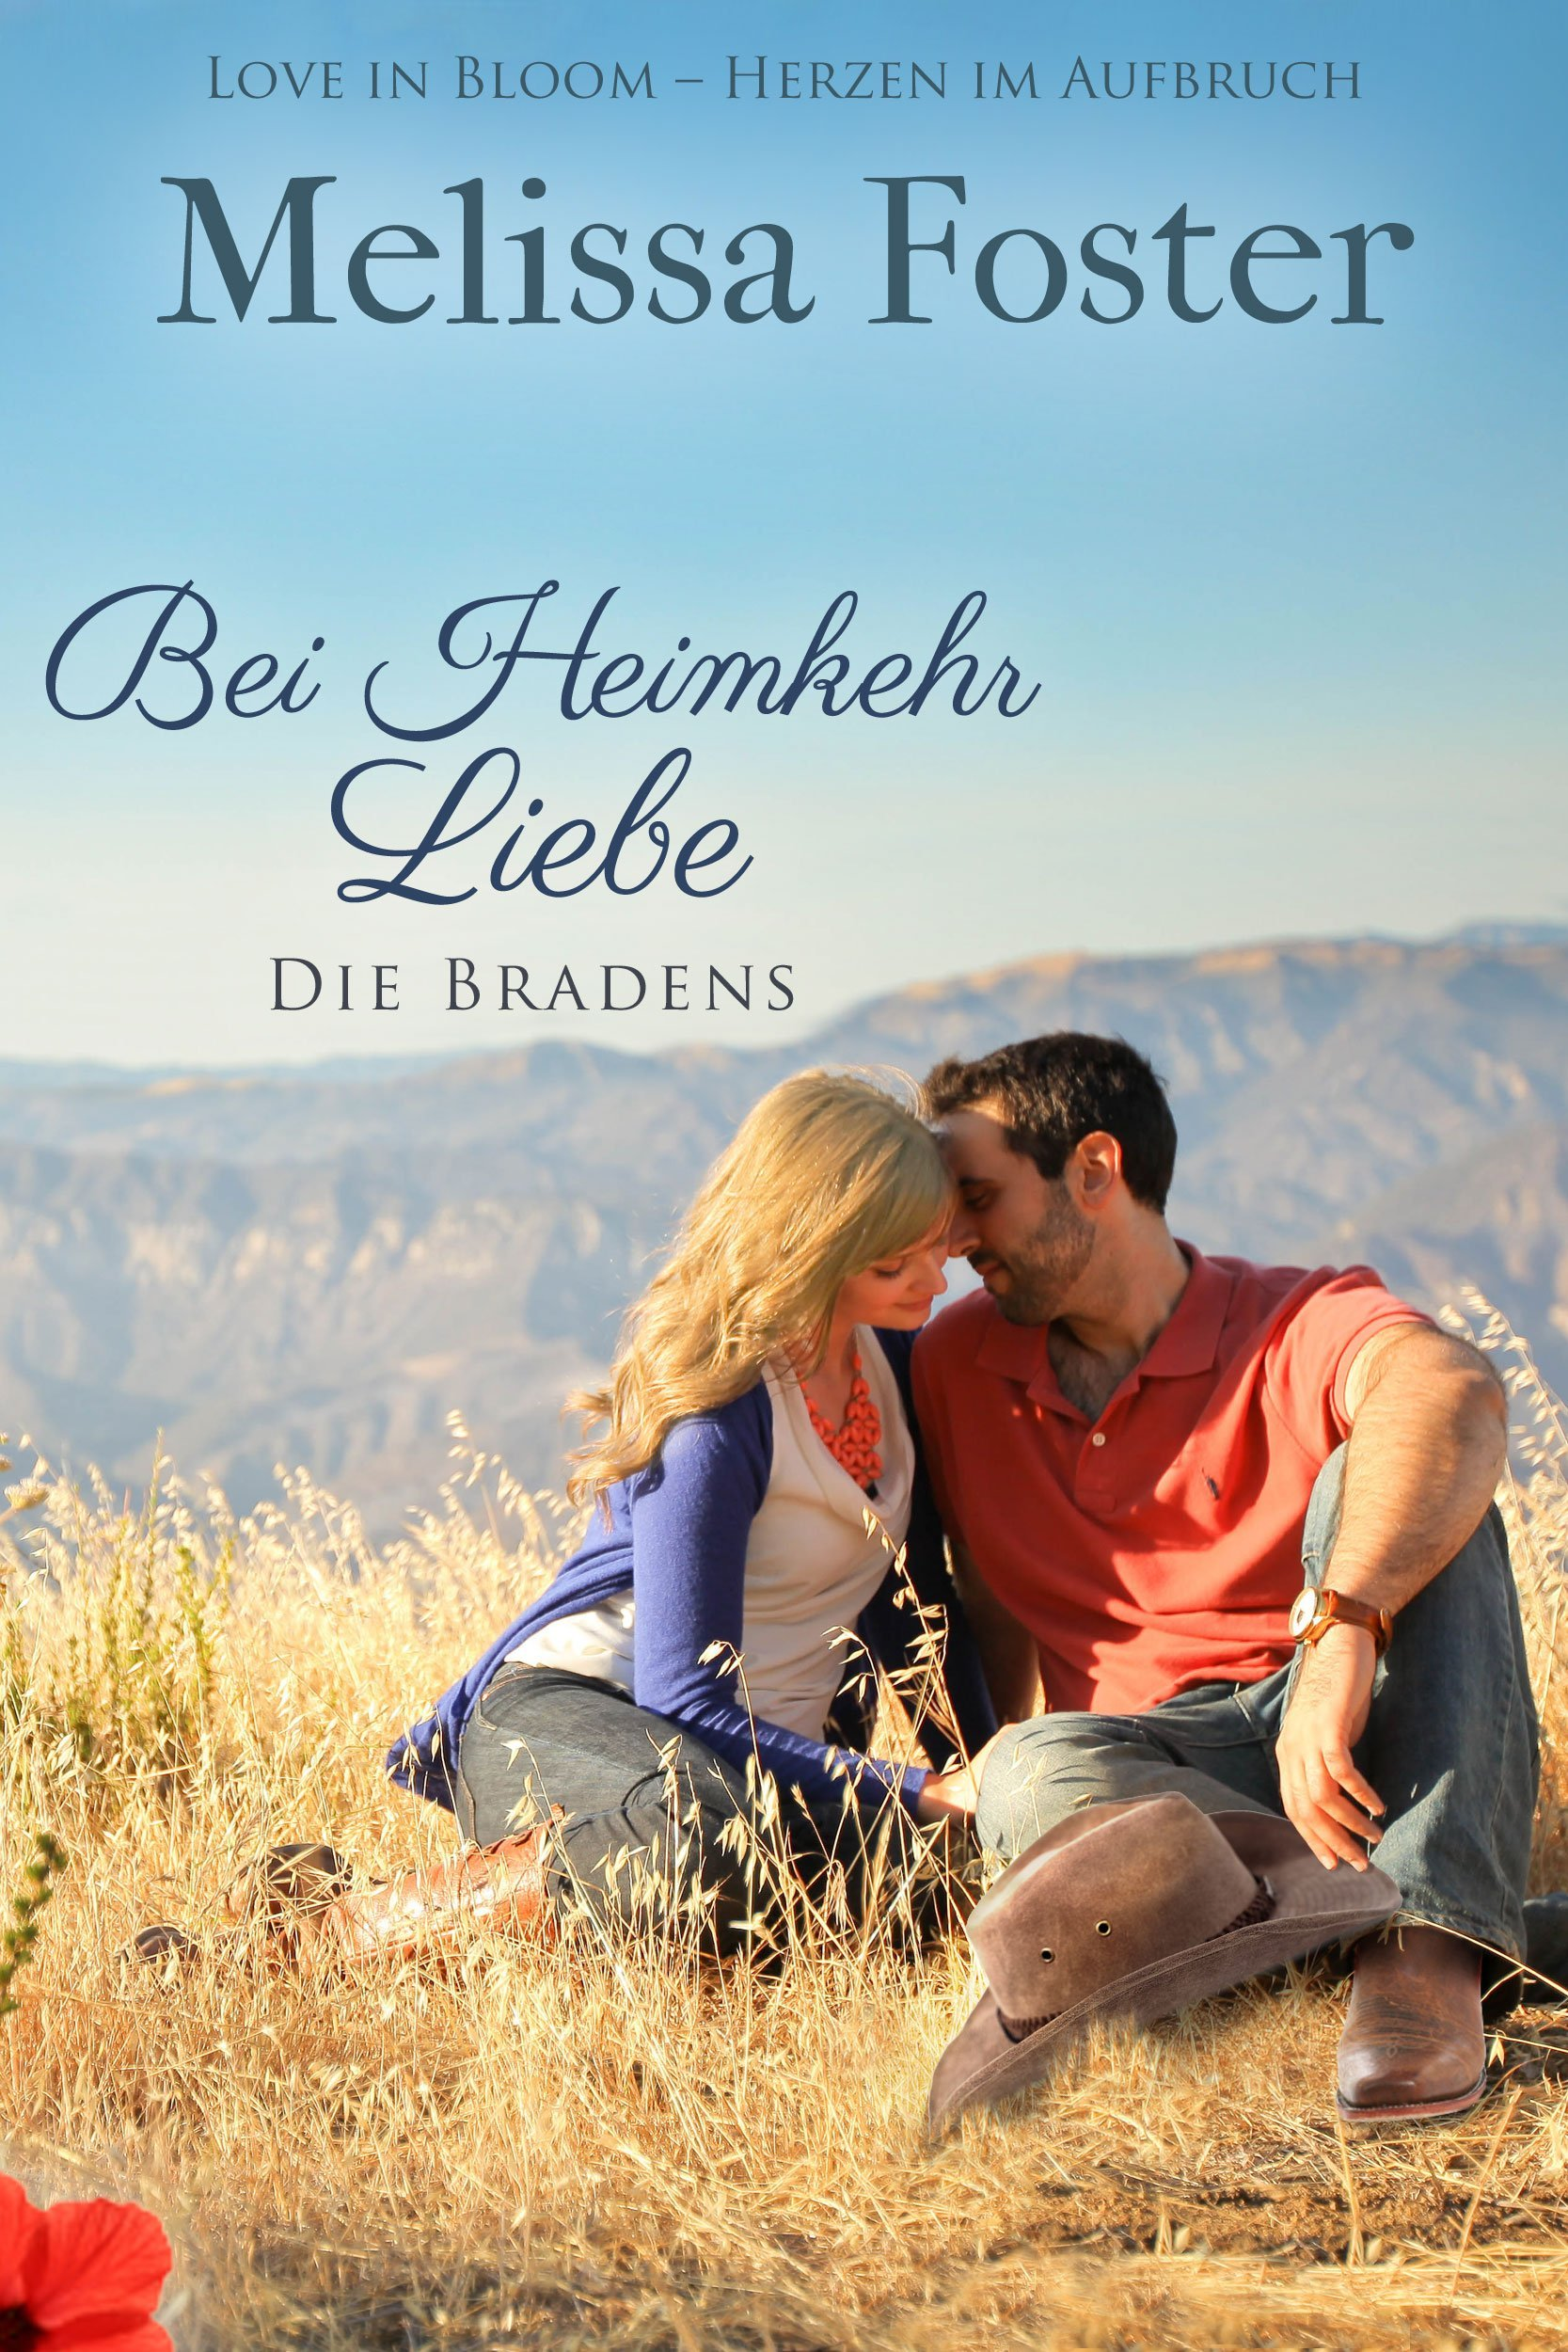 Bei Heimkehr Liebe by Melissa Foster a Love In Bloom Contemporary Romance